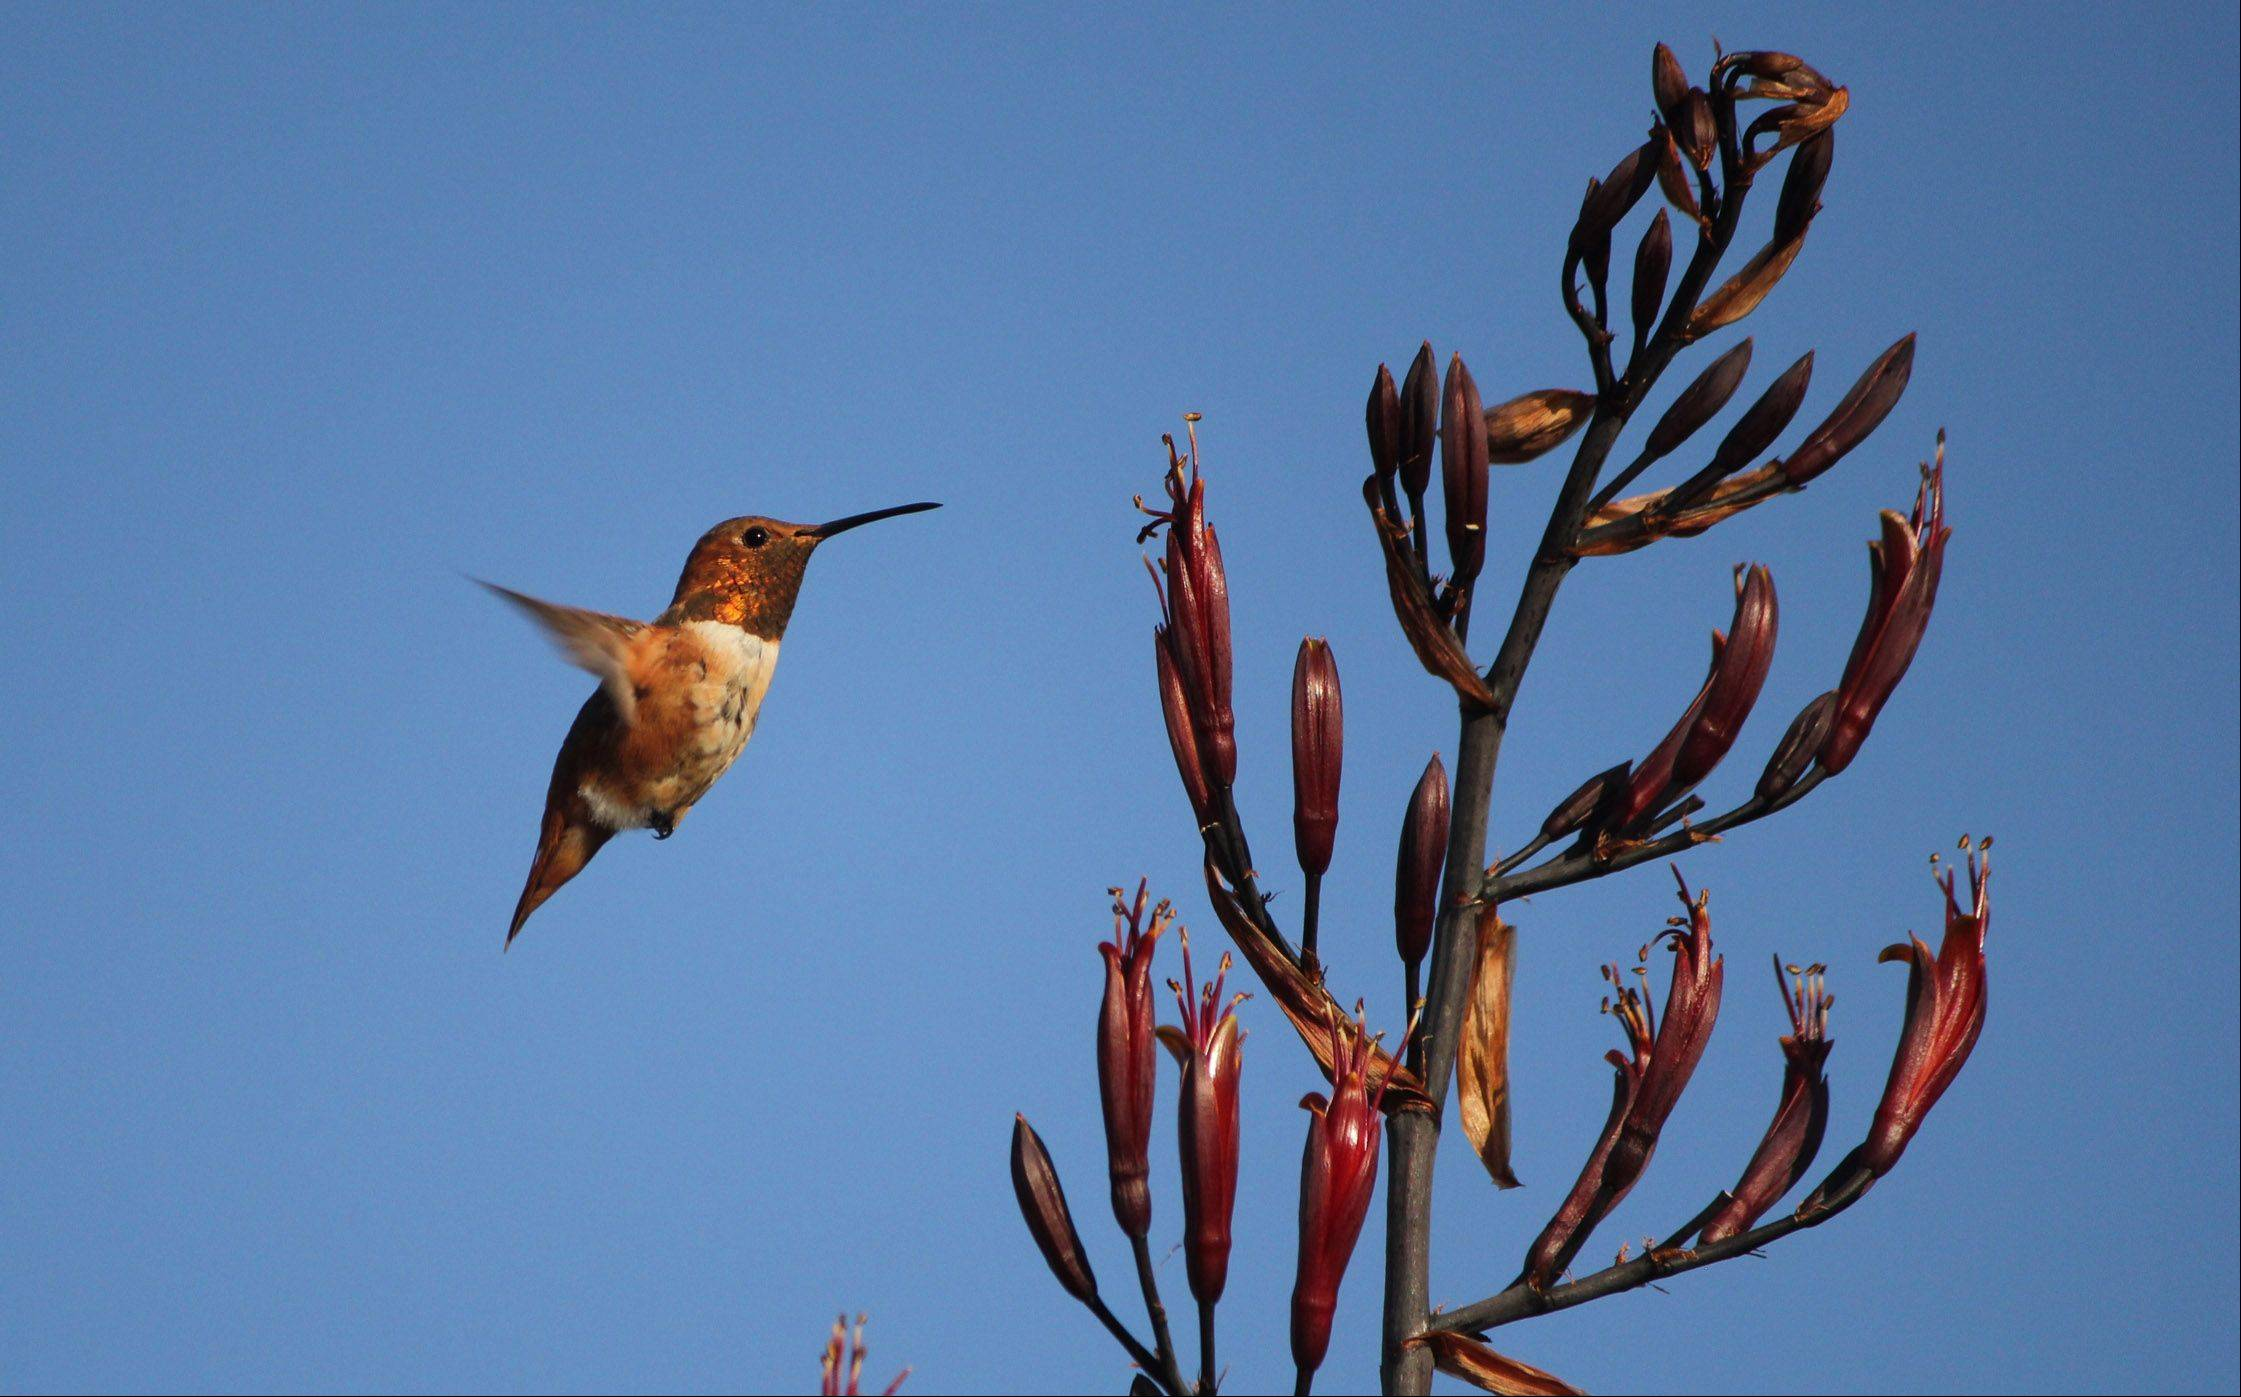 A Rufous hummingbird approaches a flowering plant to feed in Yorba Linda, California on June 12.